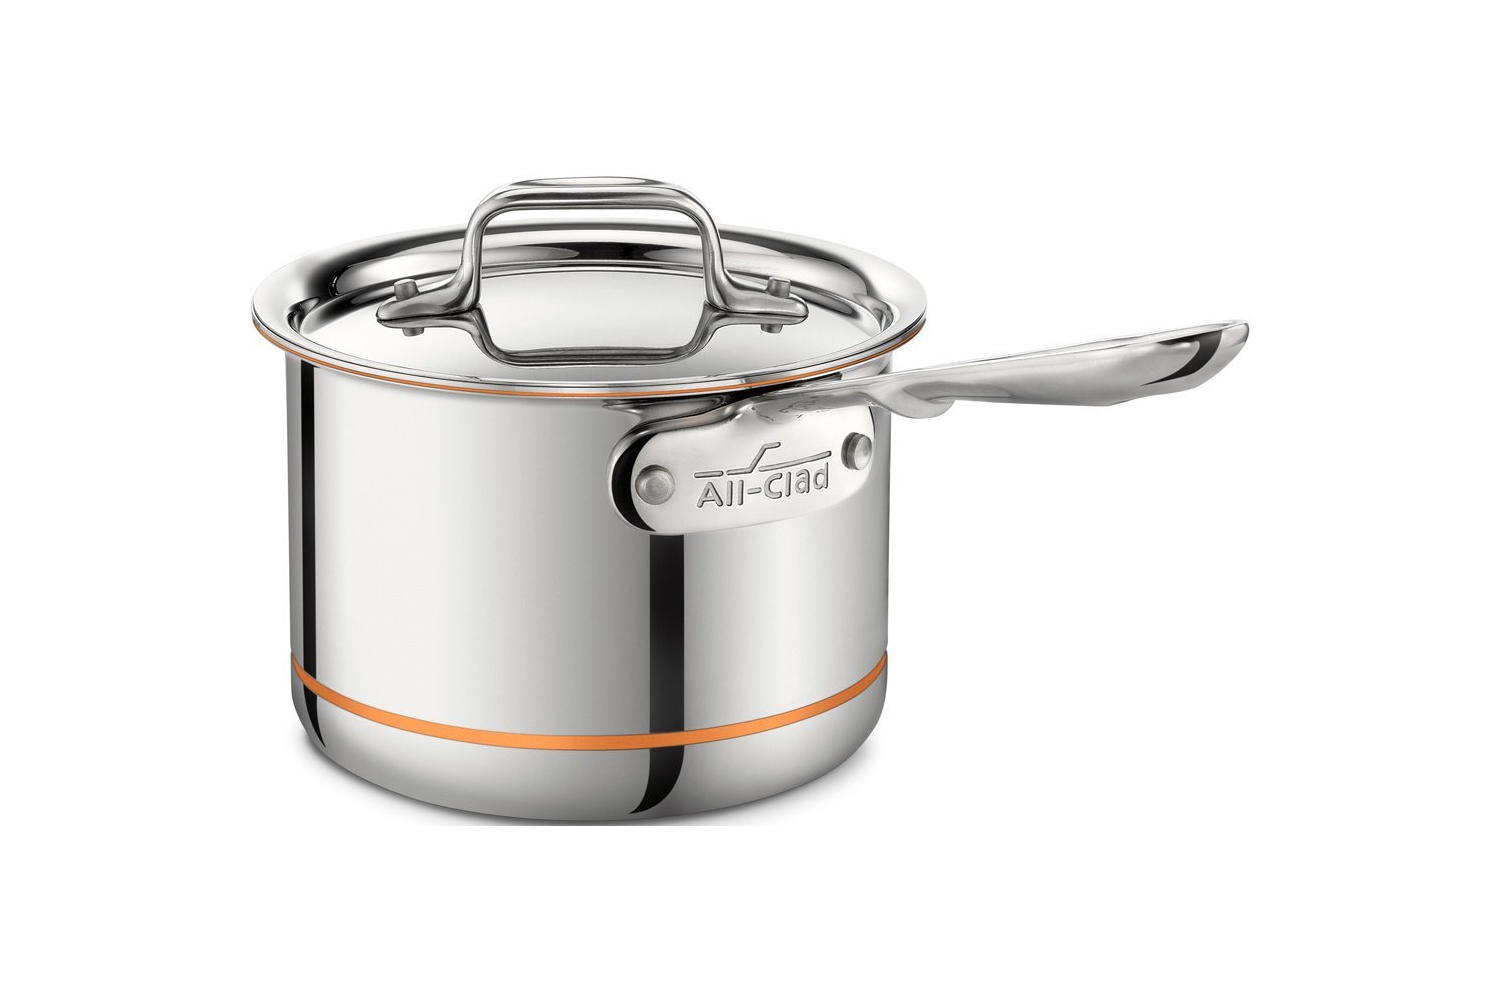 All-Clad Copper-Core 2 qt. Sauce Pan